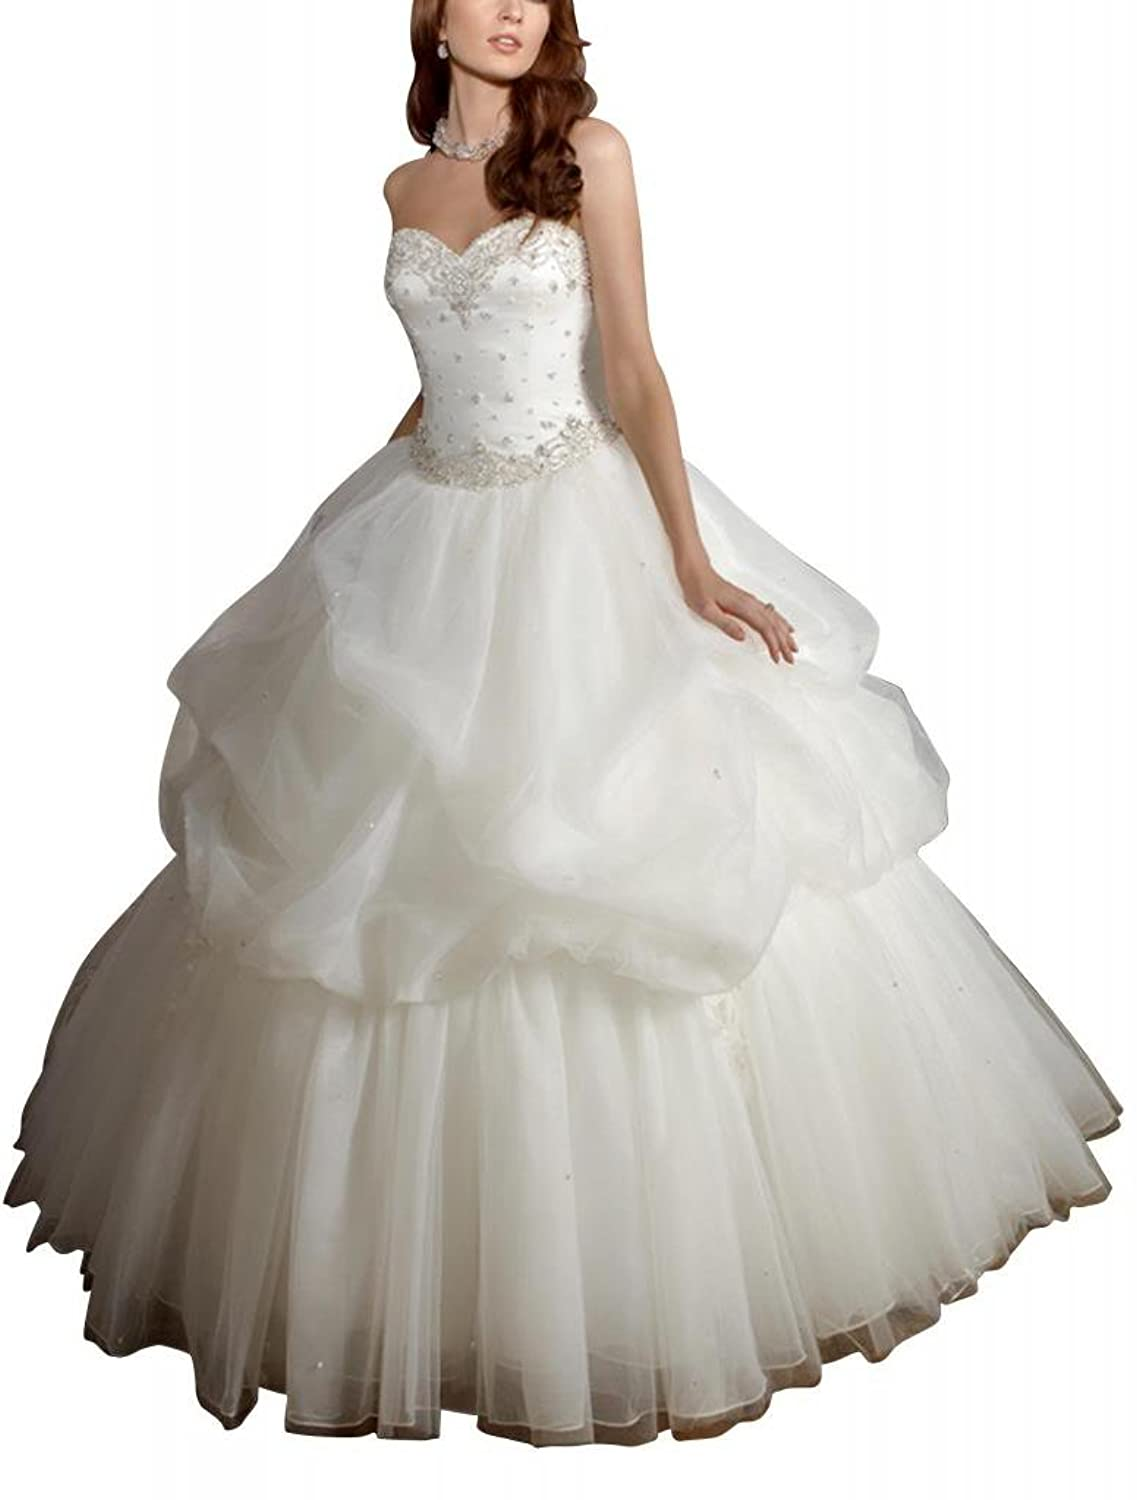 GEORGE BRIDE Beaded Sweetheart Tiered Organza Over Satin Ball Gown Wedding Dress